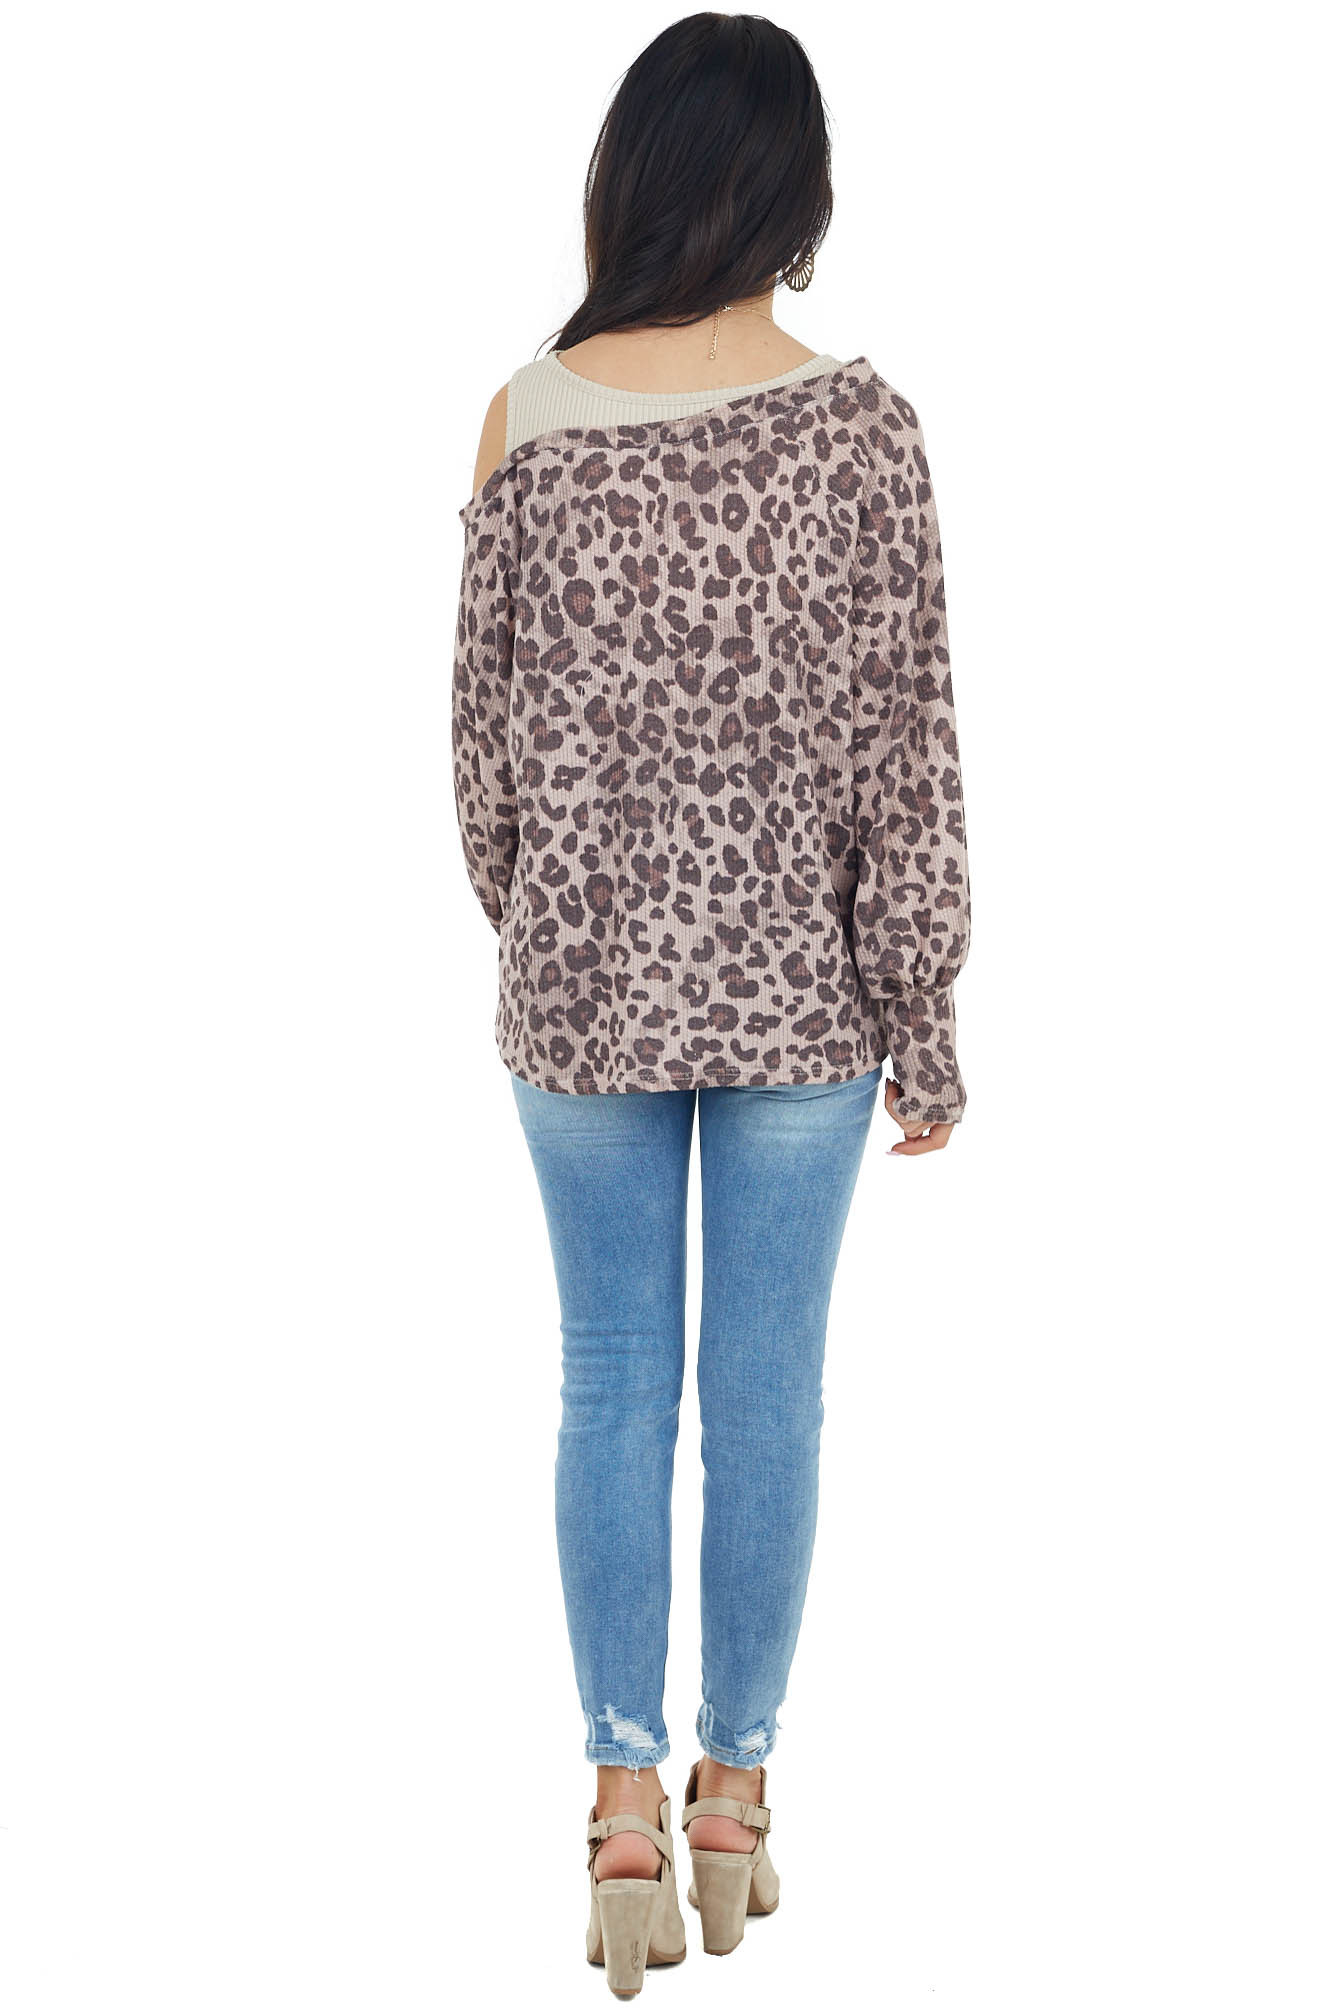 Dusty Blush Leopard Print Boat Neck Cold Shoulder Knit Top